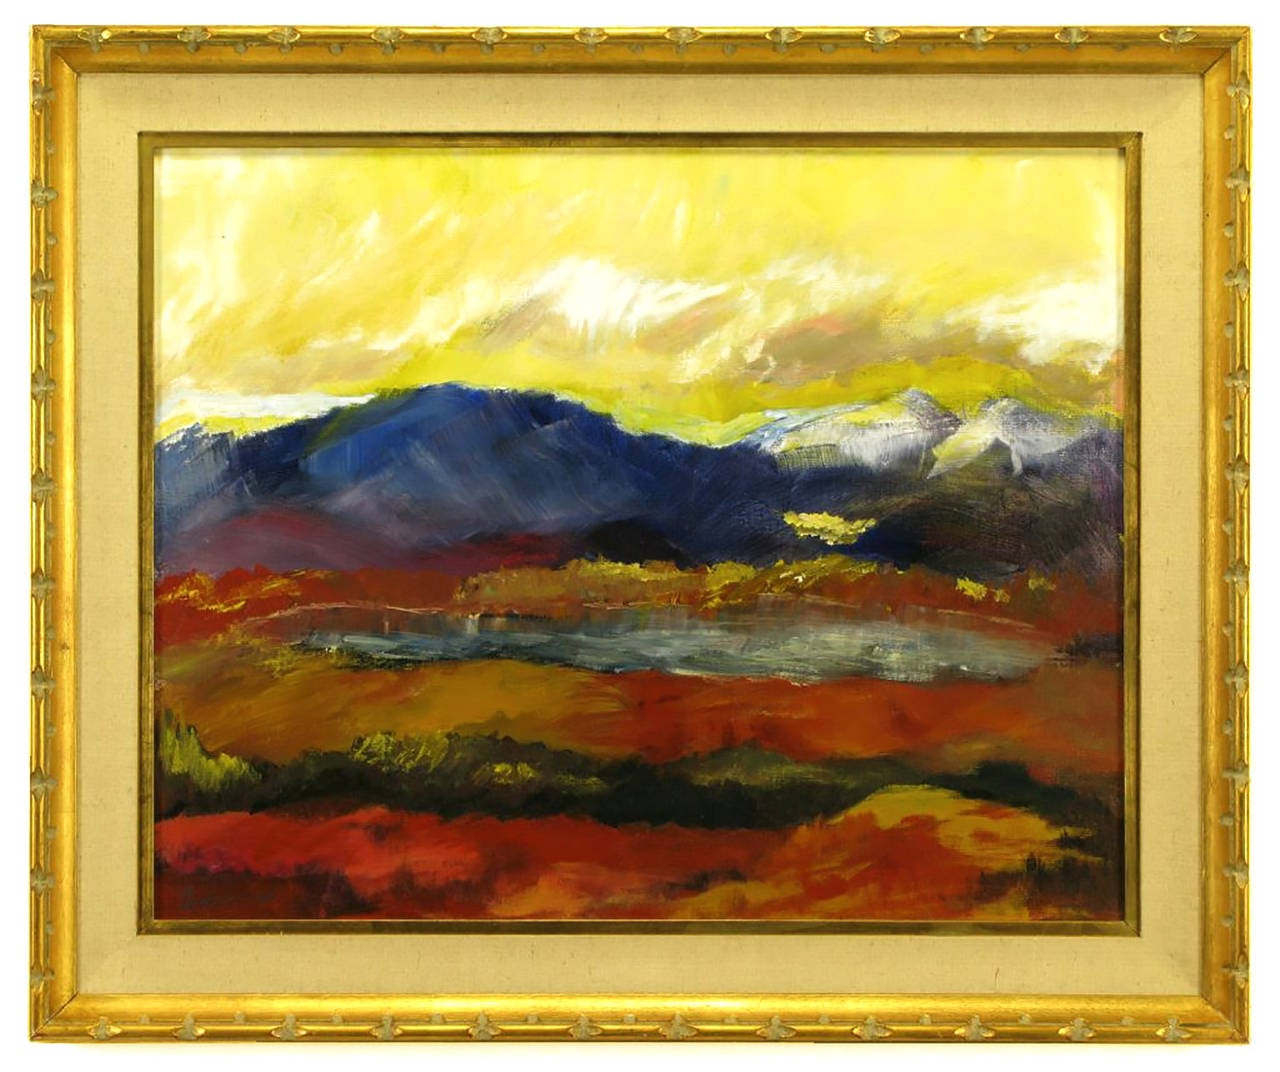 Colorful expressionist mountain scene with lake in reds, gold, yellow, violet, blue and white; most likely by Barbara Leadabrand (1922-1994), a renowned Pasadena painter and sculptor. Giltwood frame with gold leaf and linen wrapped matting. Framed